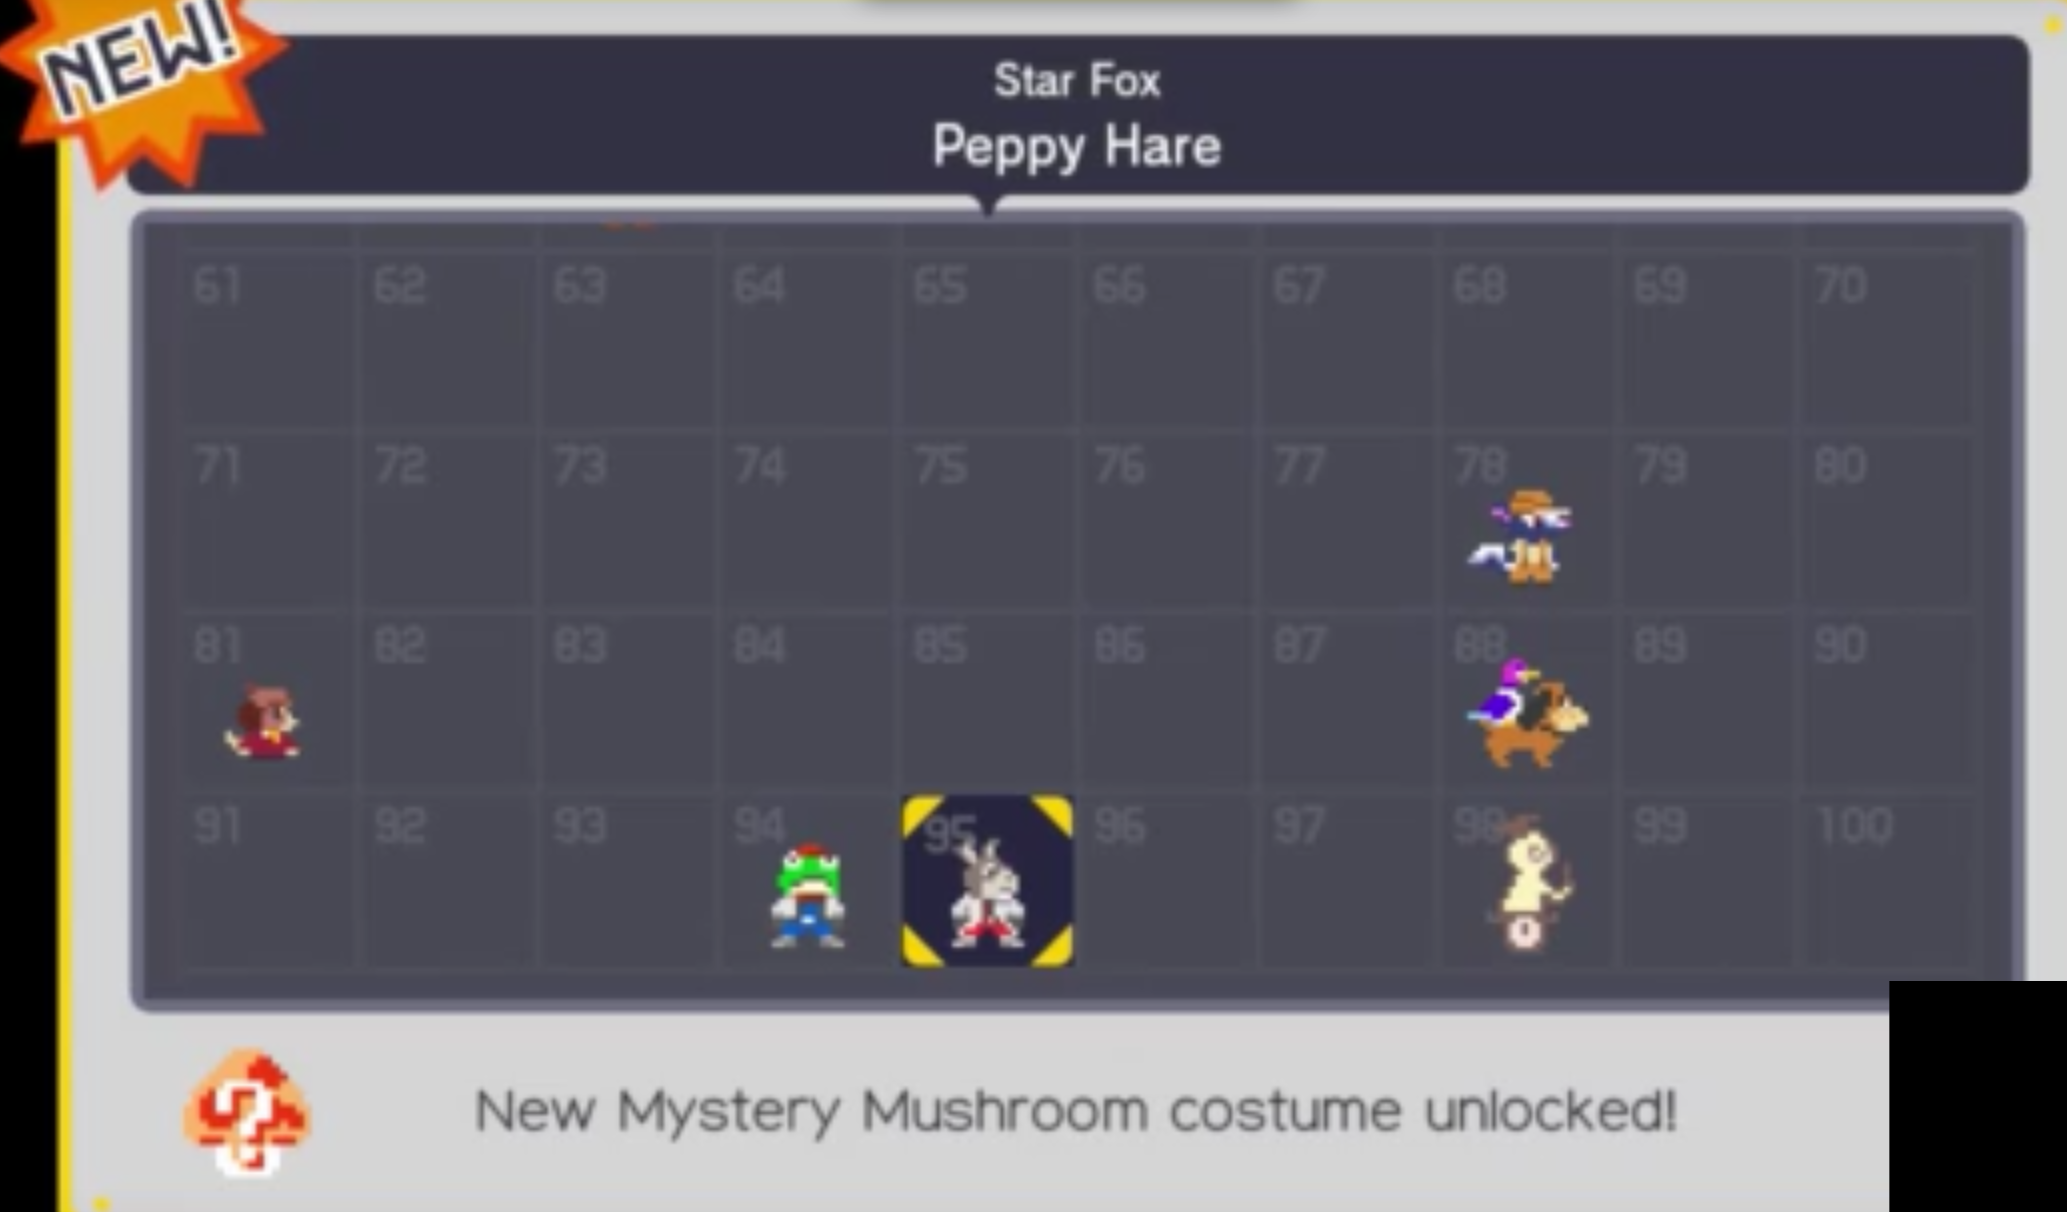 Super Mario Maker - 2 hours of footage, 2 more character costumes